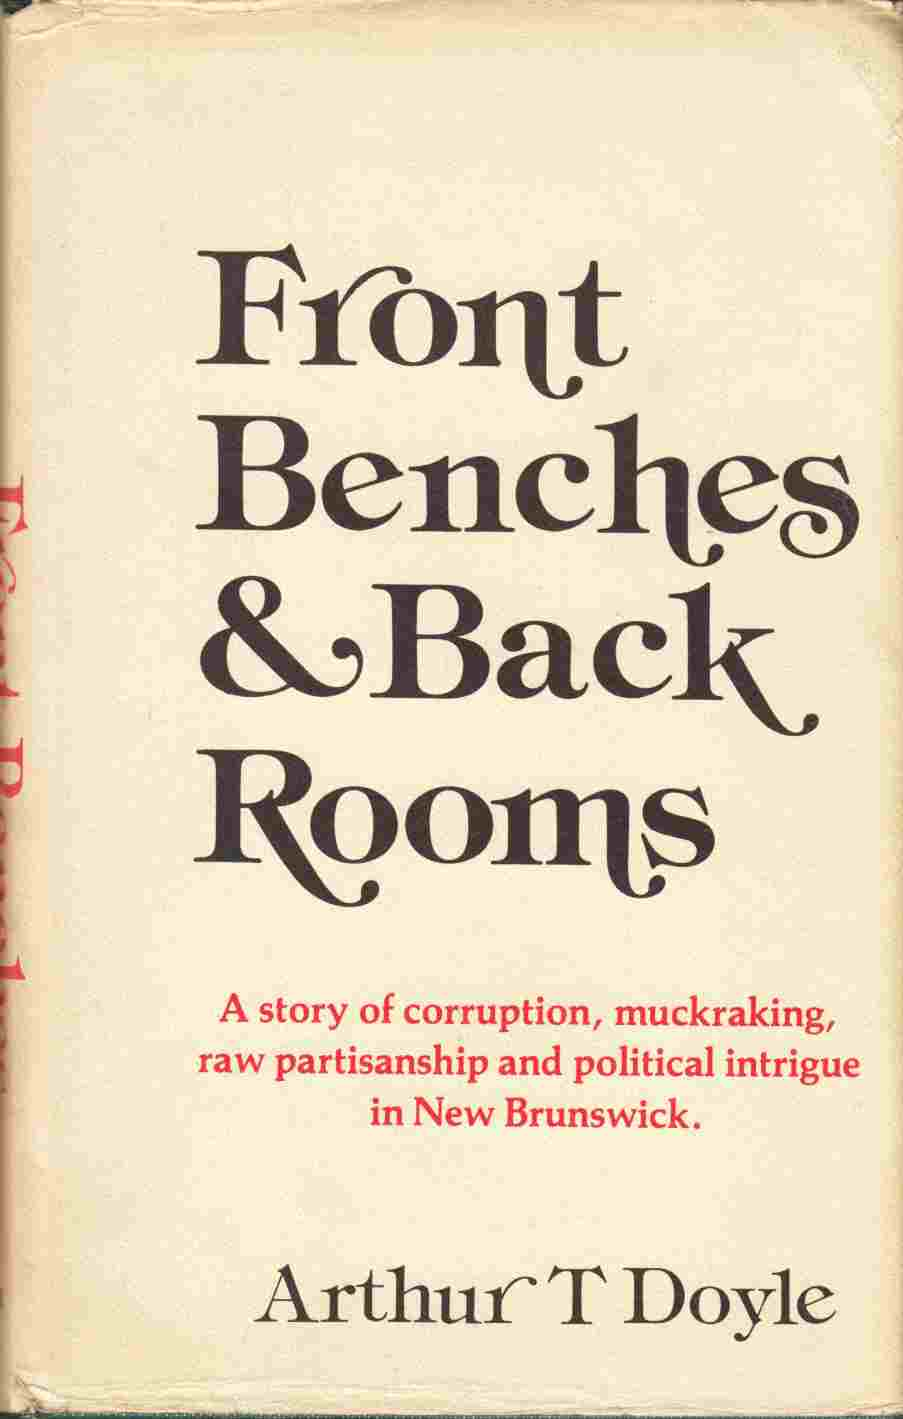 Image for Front Benches & Back Rooms A Story of Corruption, Muckraking, Raw Partisanship and Political Intrigue in New Brunswick